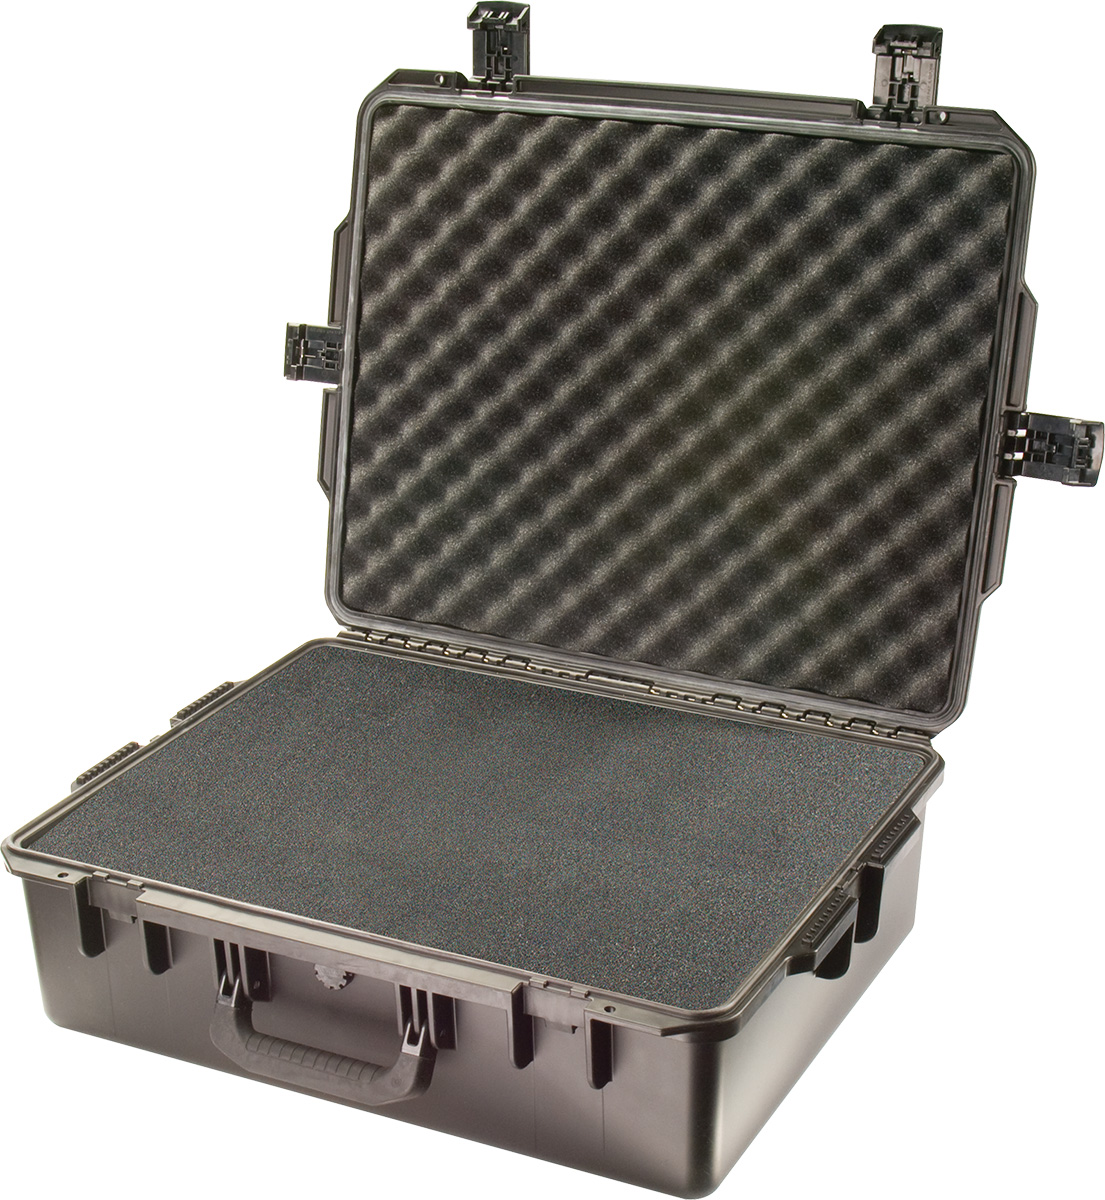 pelican im2700 storm watertight case